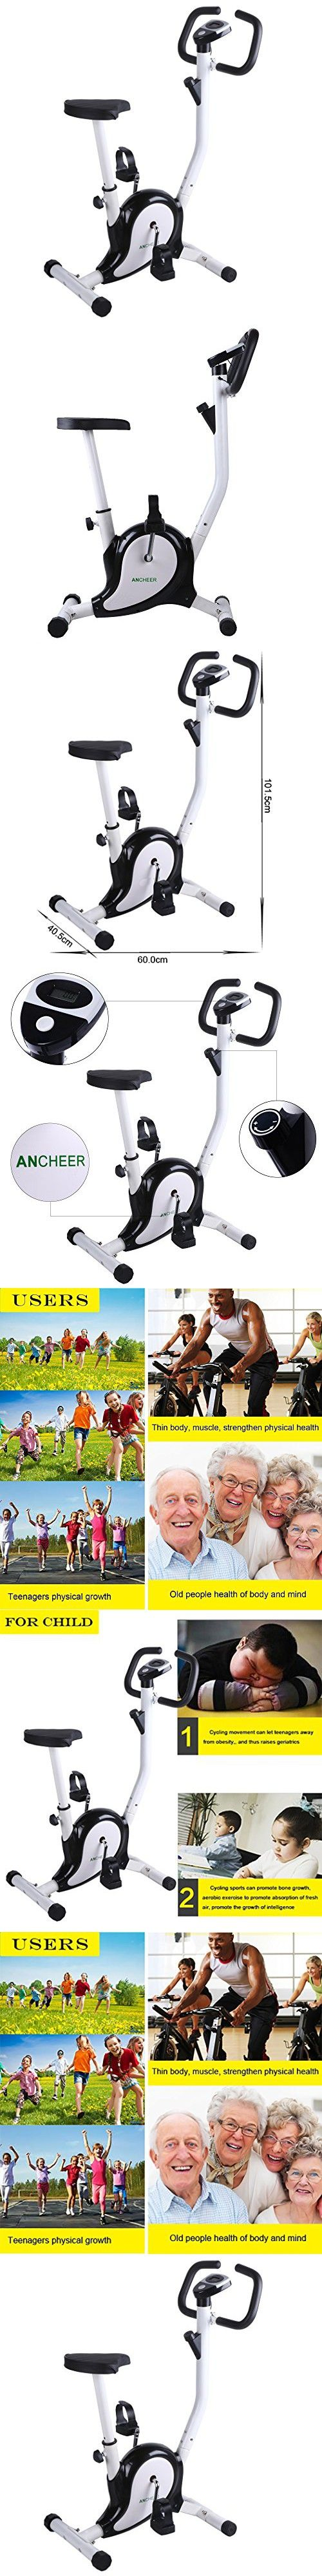 Ancheer Upright Exercise Bike 6 Level Magnetic Tension Adjustable Indoor Cycle Trainer with LCD Display